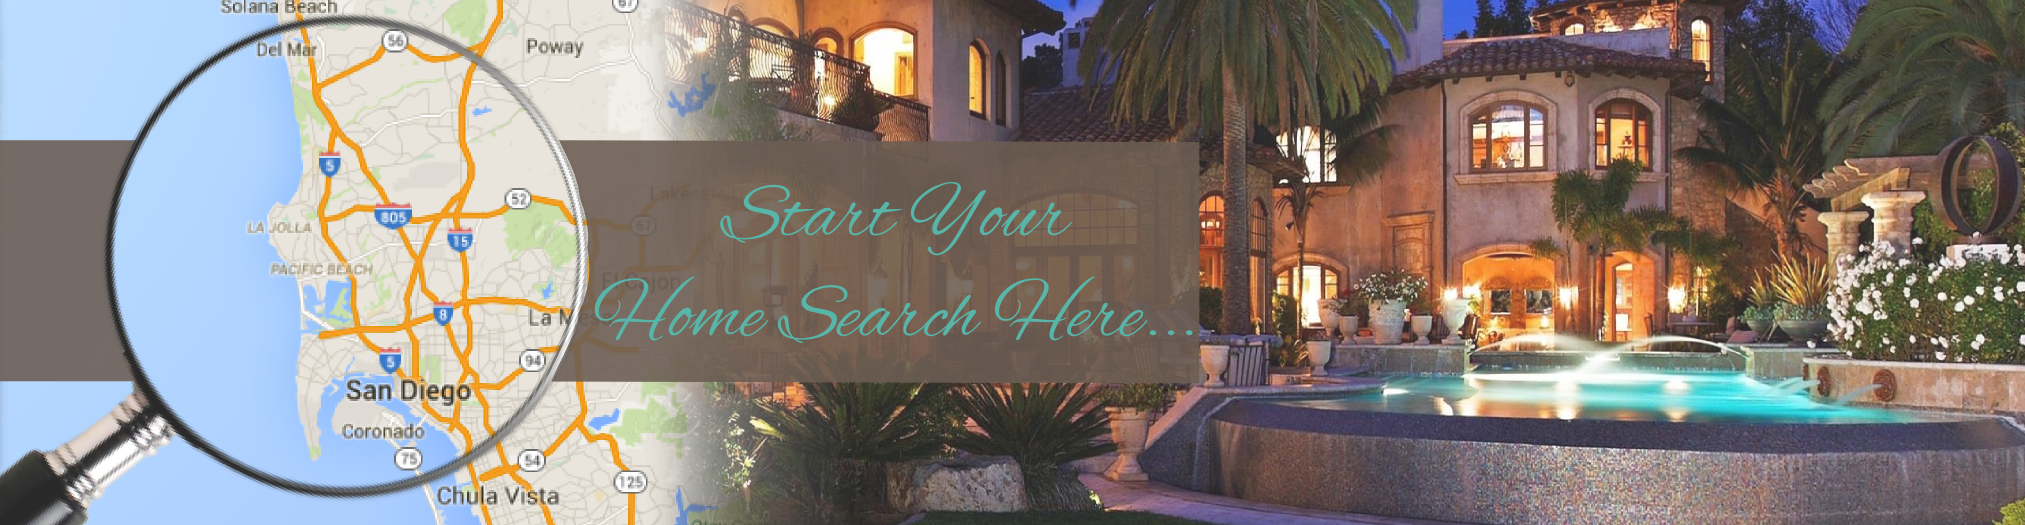 TIFFANY YACULLO, Keller Williams Realty - Home Search - SAN DIEGO  Homes